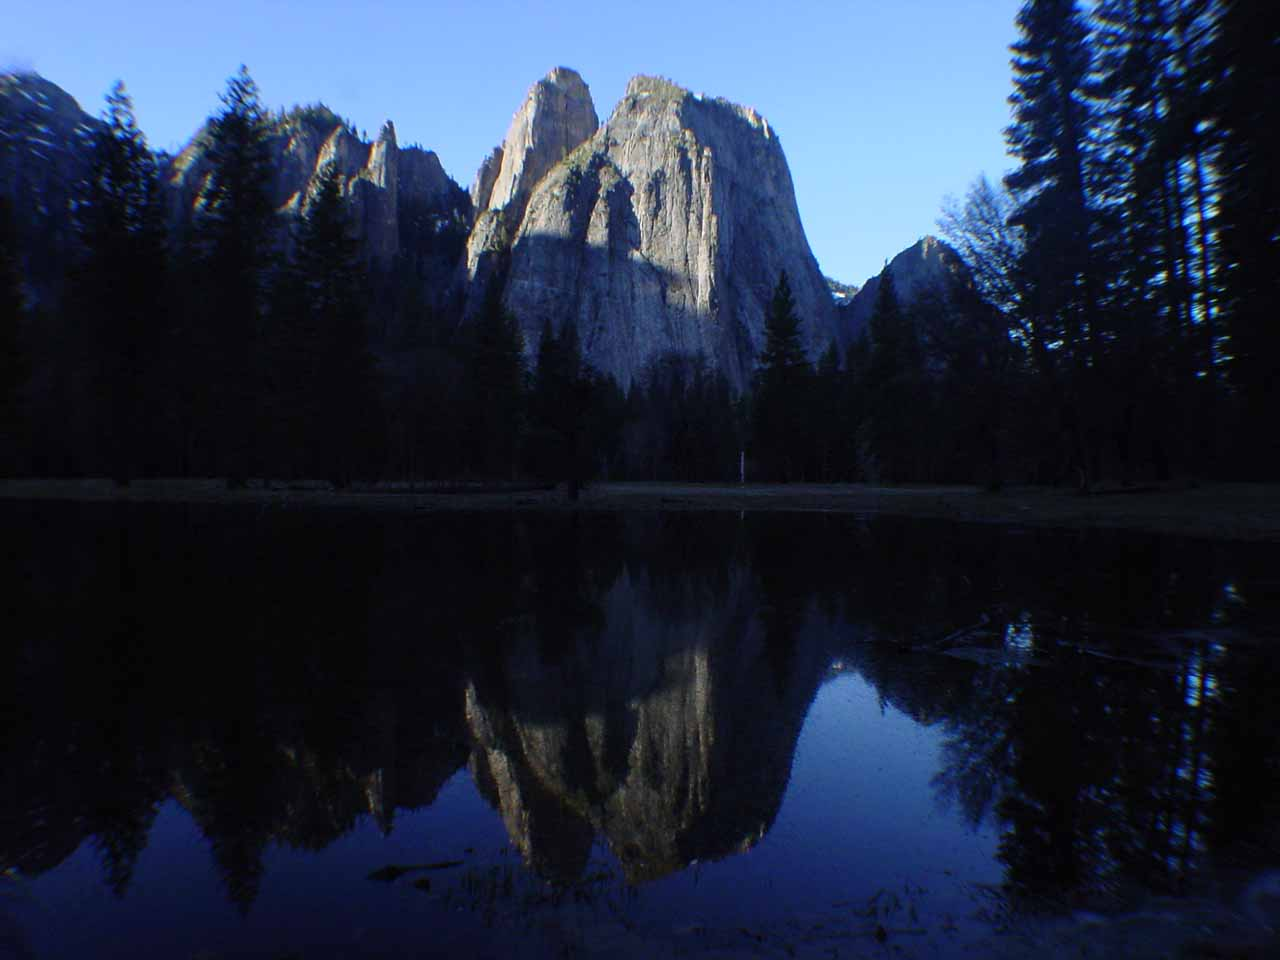 Just to the east of Bridalveil Fall was the impressive Cathedral Rock and Cathedral Spires seen here across the meadow in morning reflections from right at the base of El Capitan